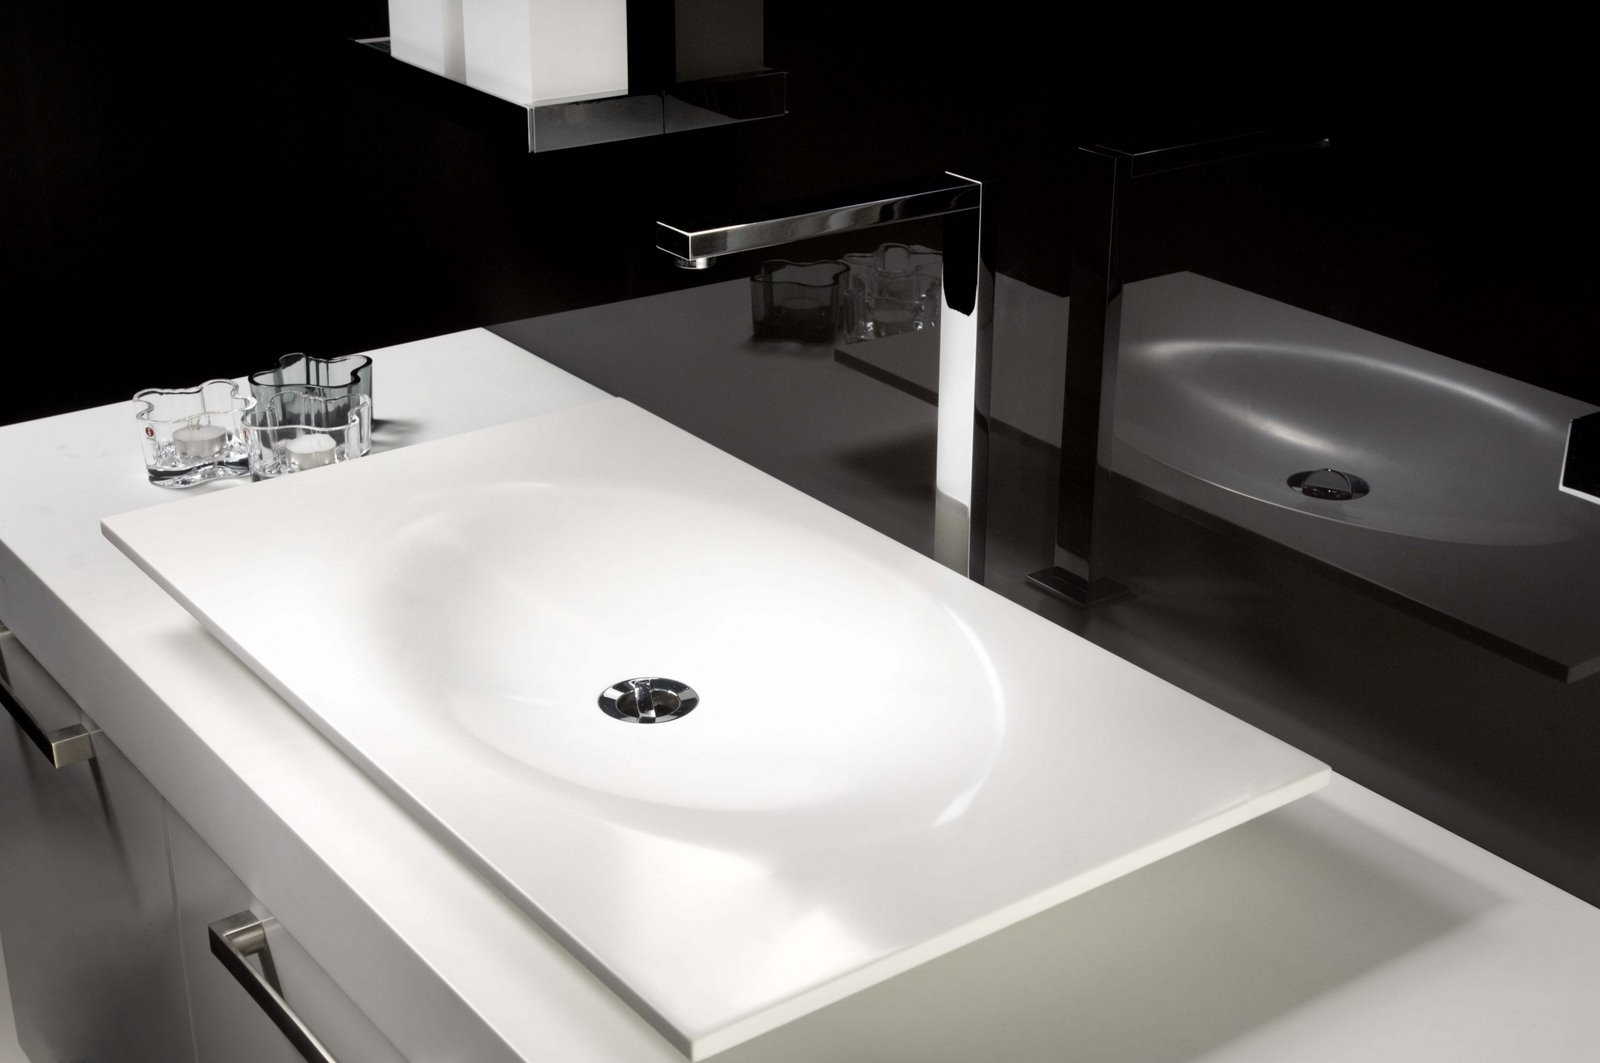 Scoop Basin In Glacier White